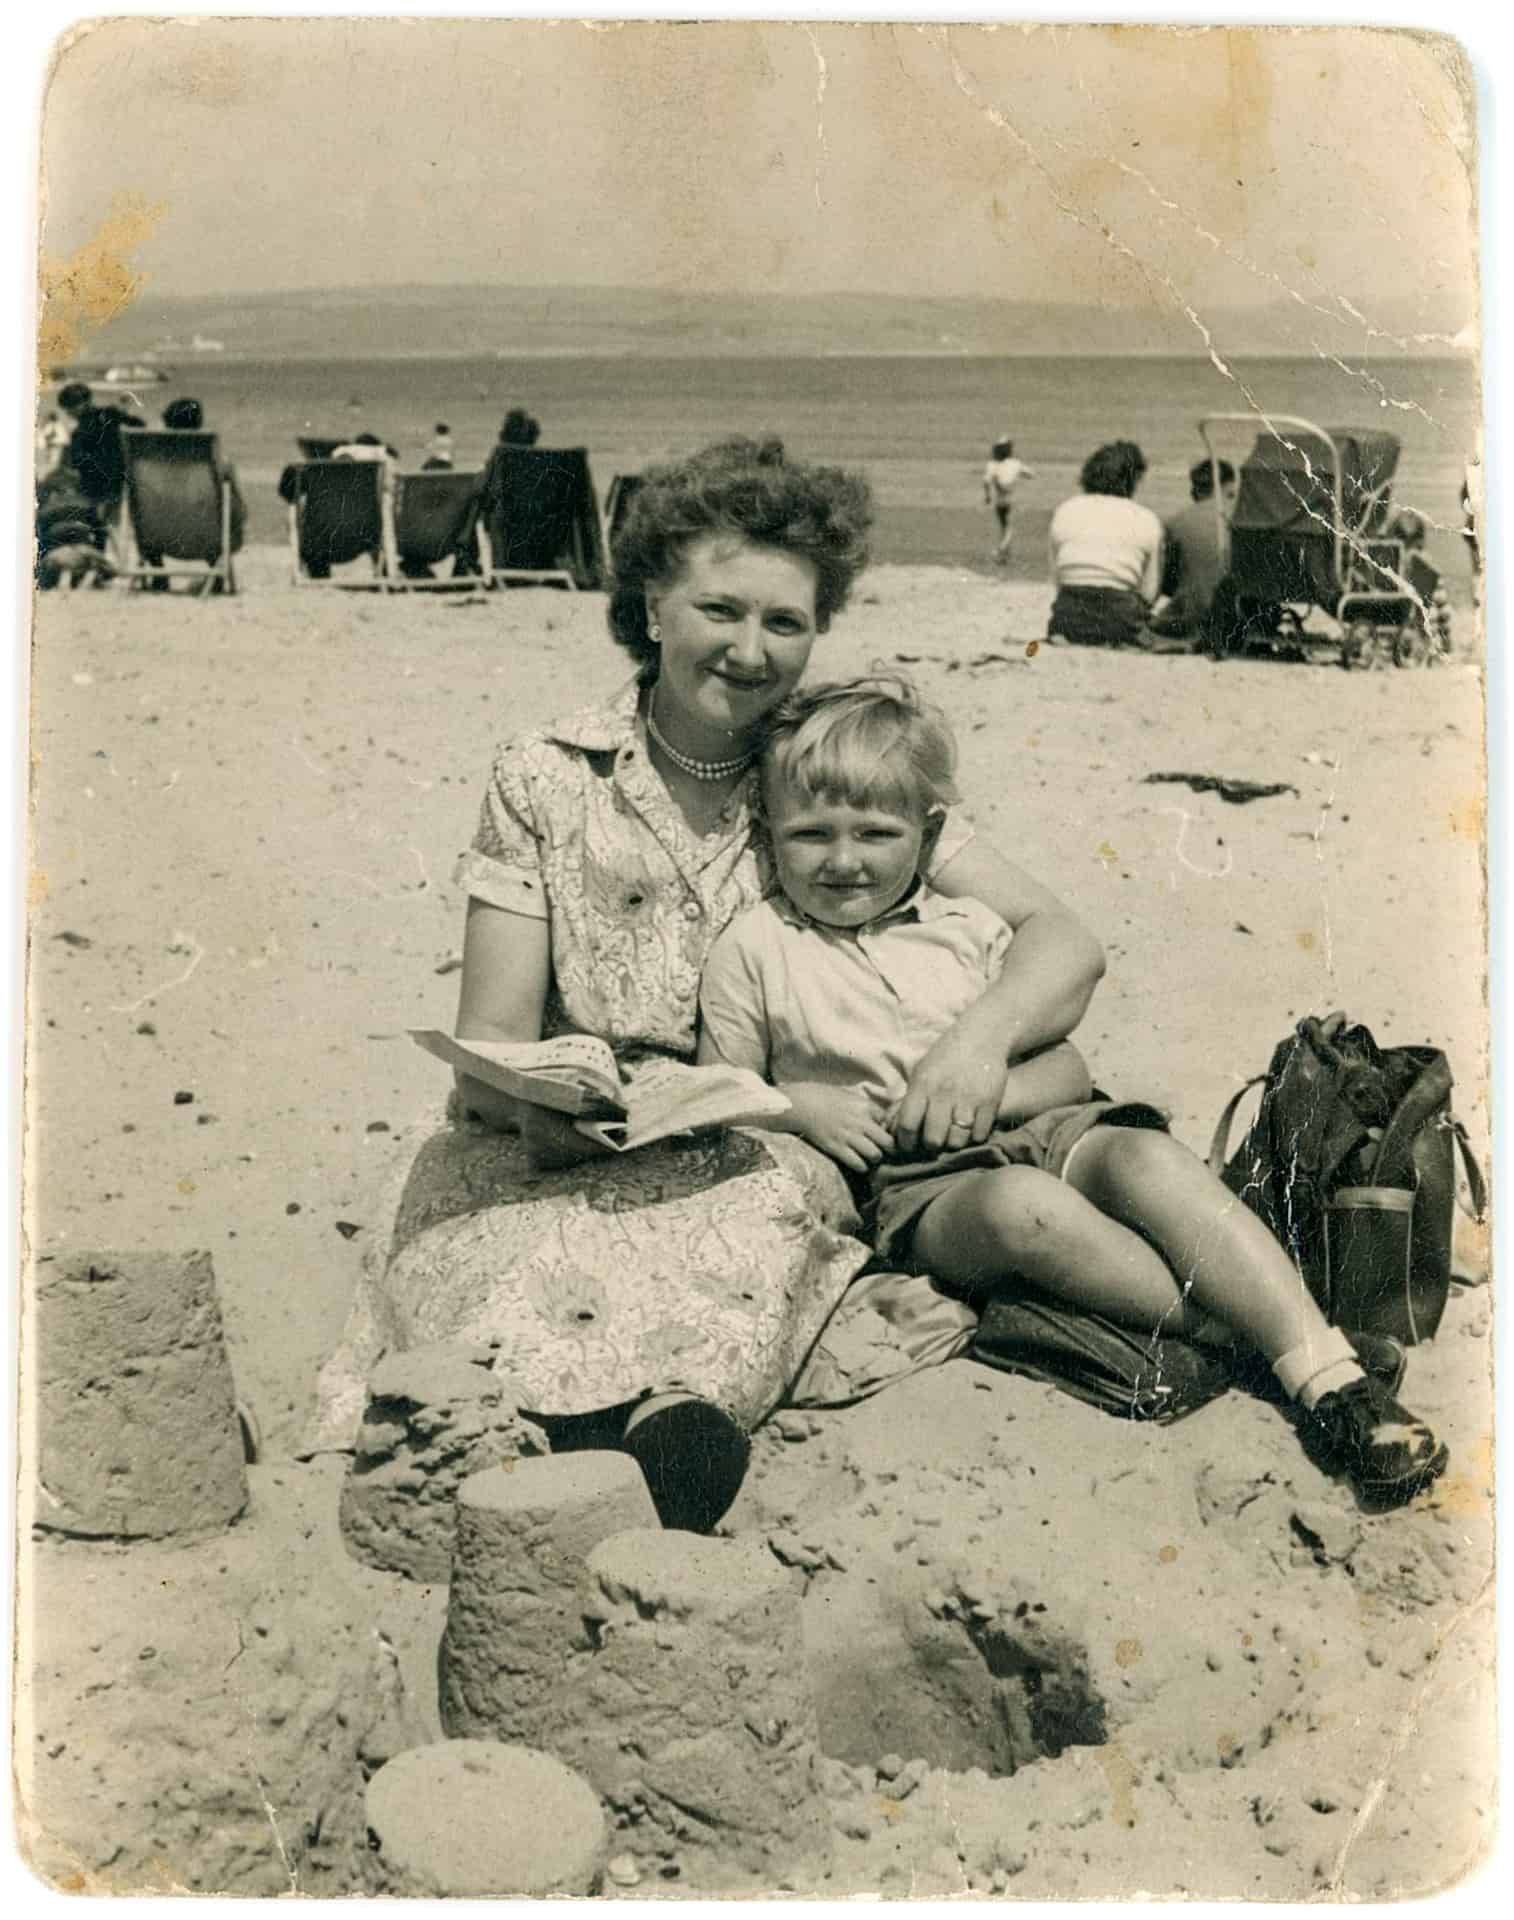 Mom and me probably at Weston-Super-Mare in the 1950s